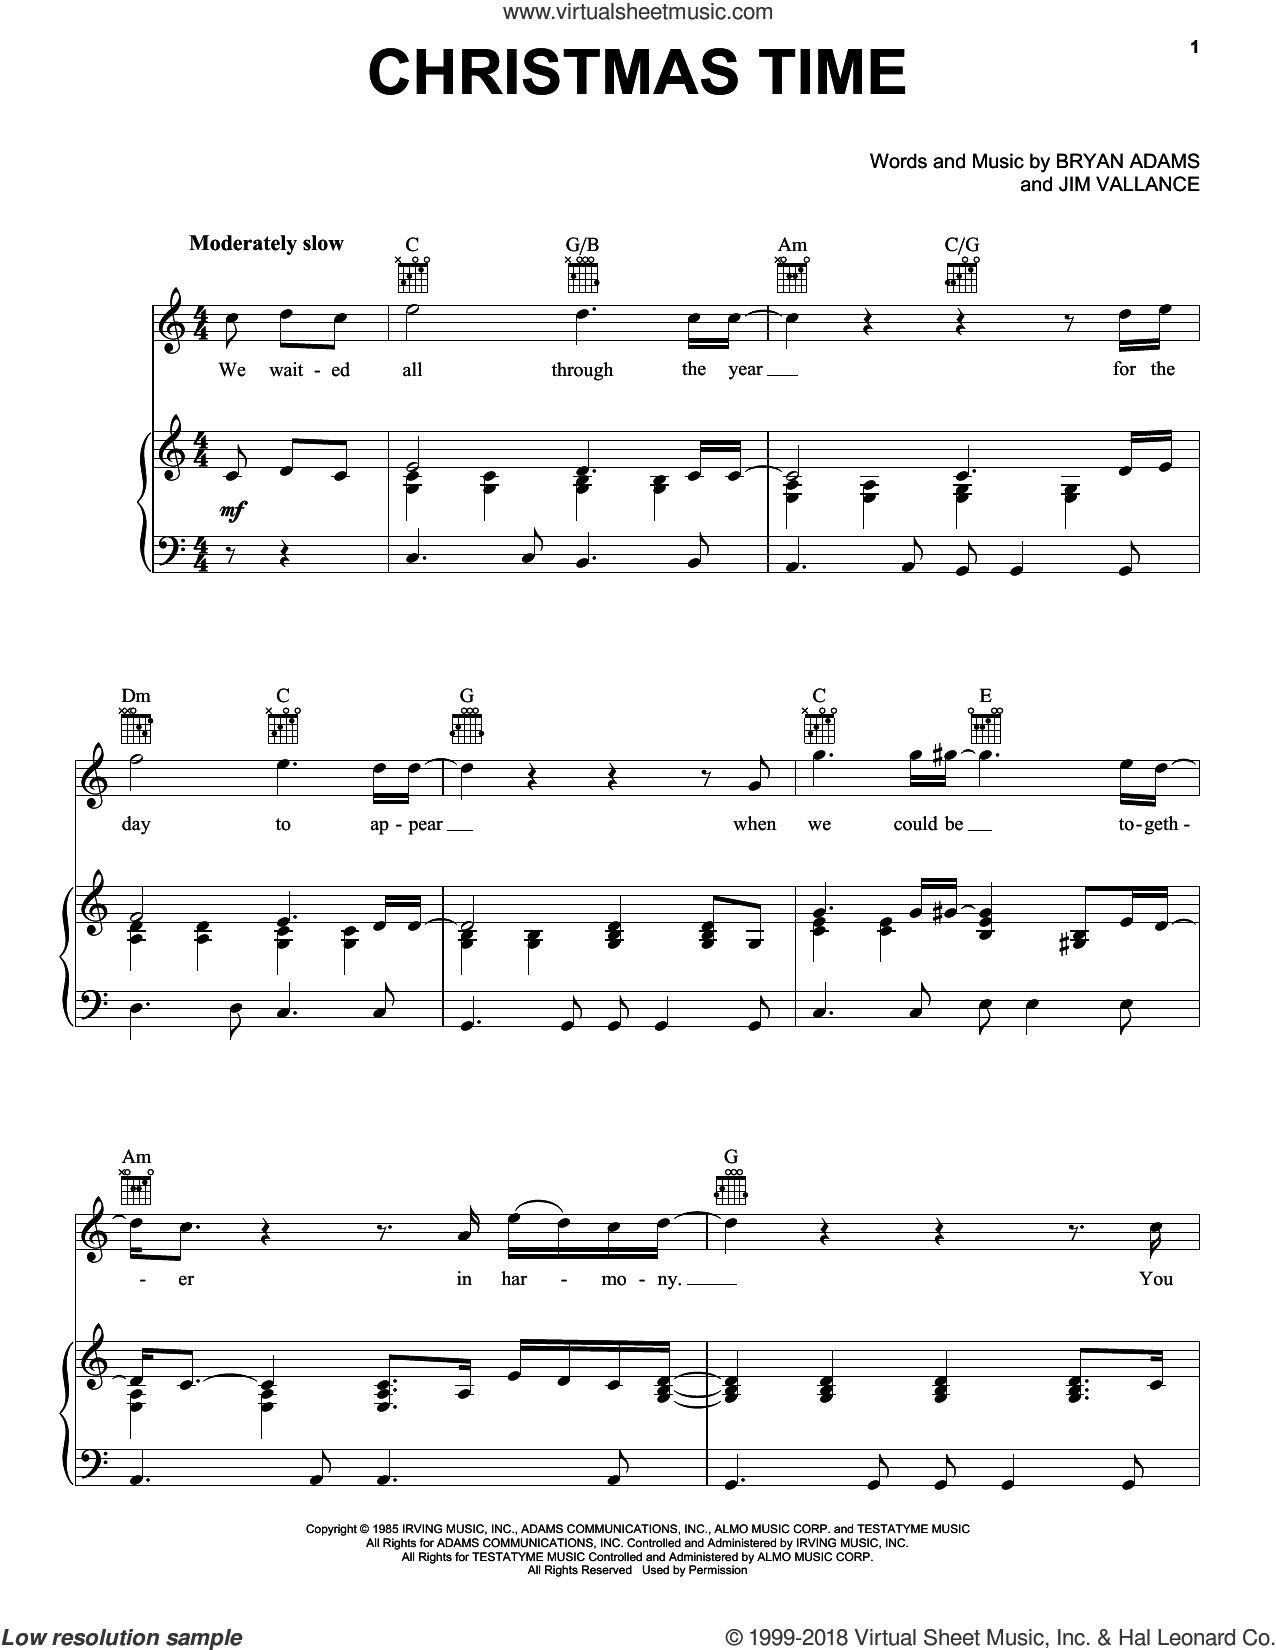 Christmas Time sheet music for voice, piano or guitar by Bryan Adams and Jim Vallance, intermediate skill level